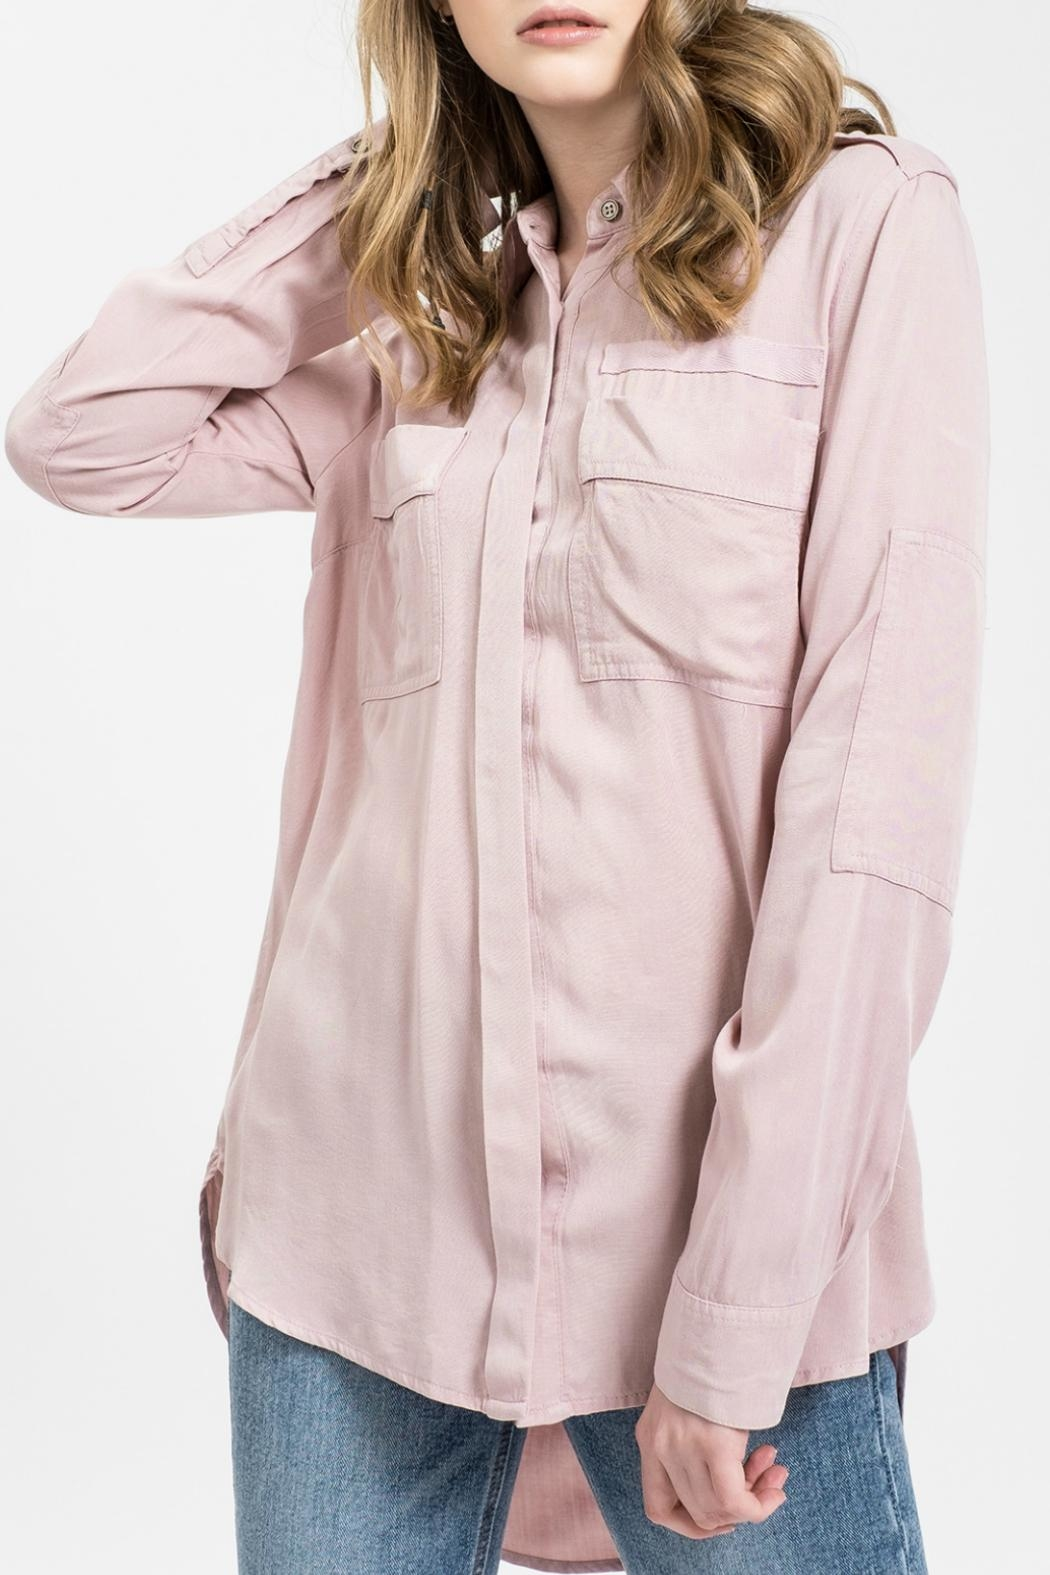 Sweet Wanderer by Blue Pepper Kenni Blush Button Up Top - Main Image